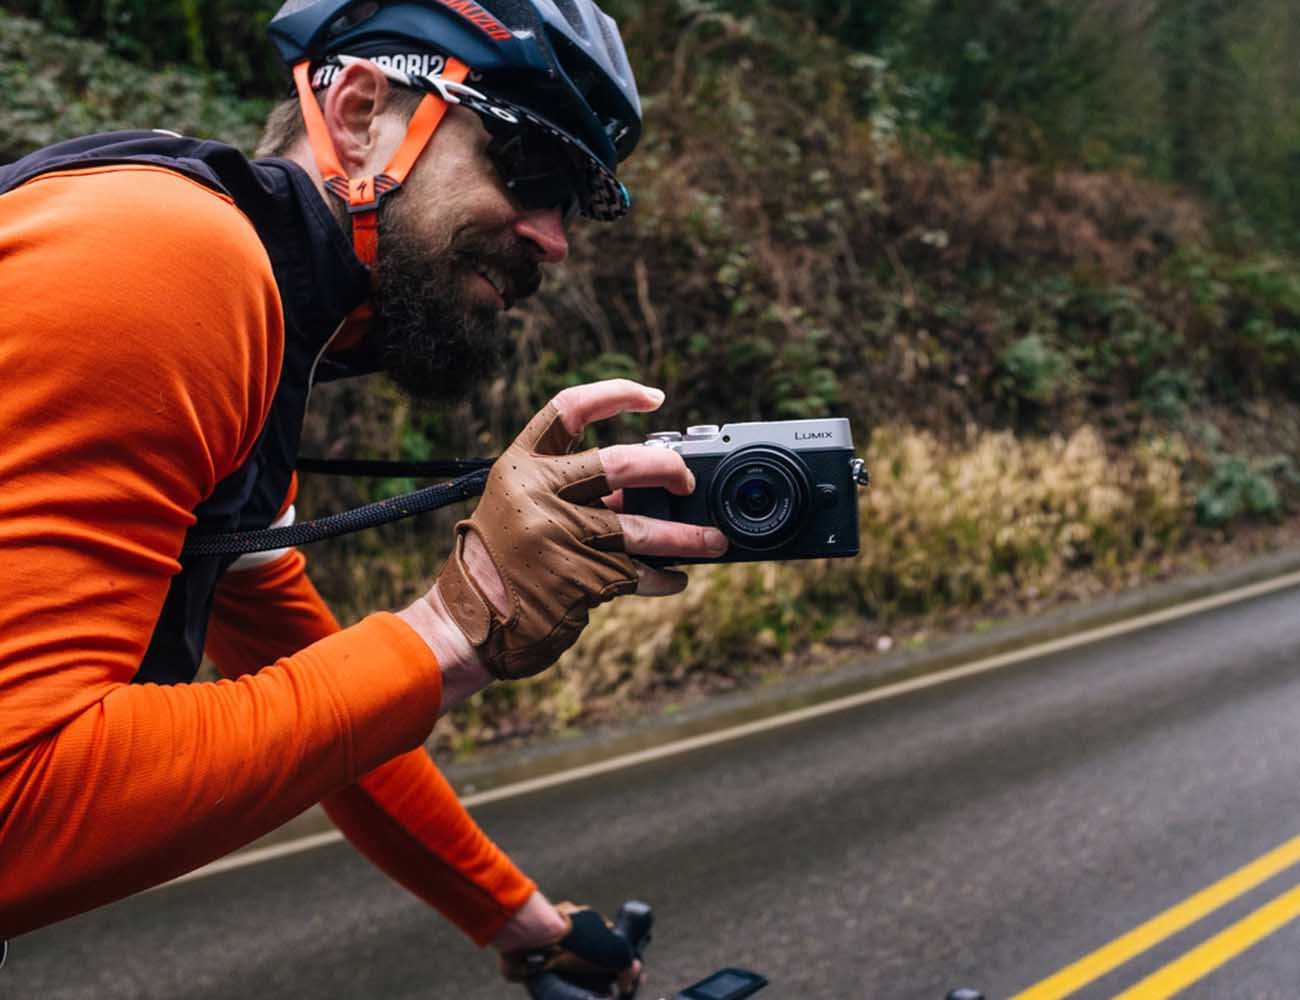 Mettle Speed Strap for Cyclists